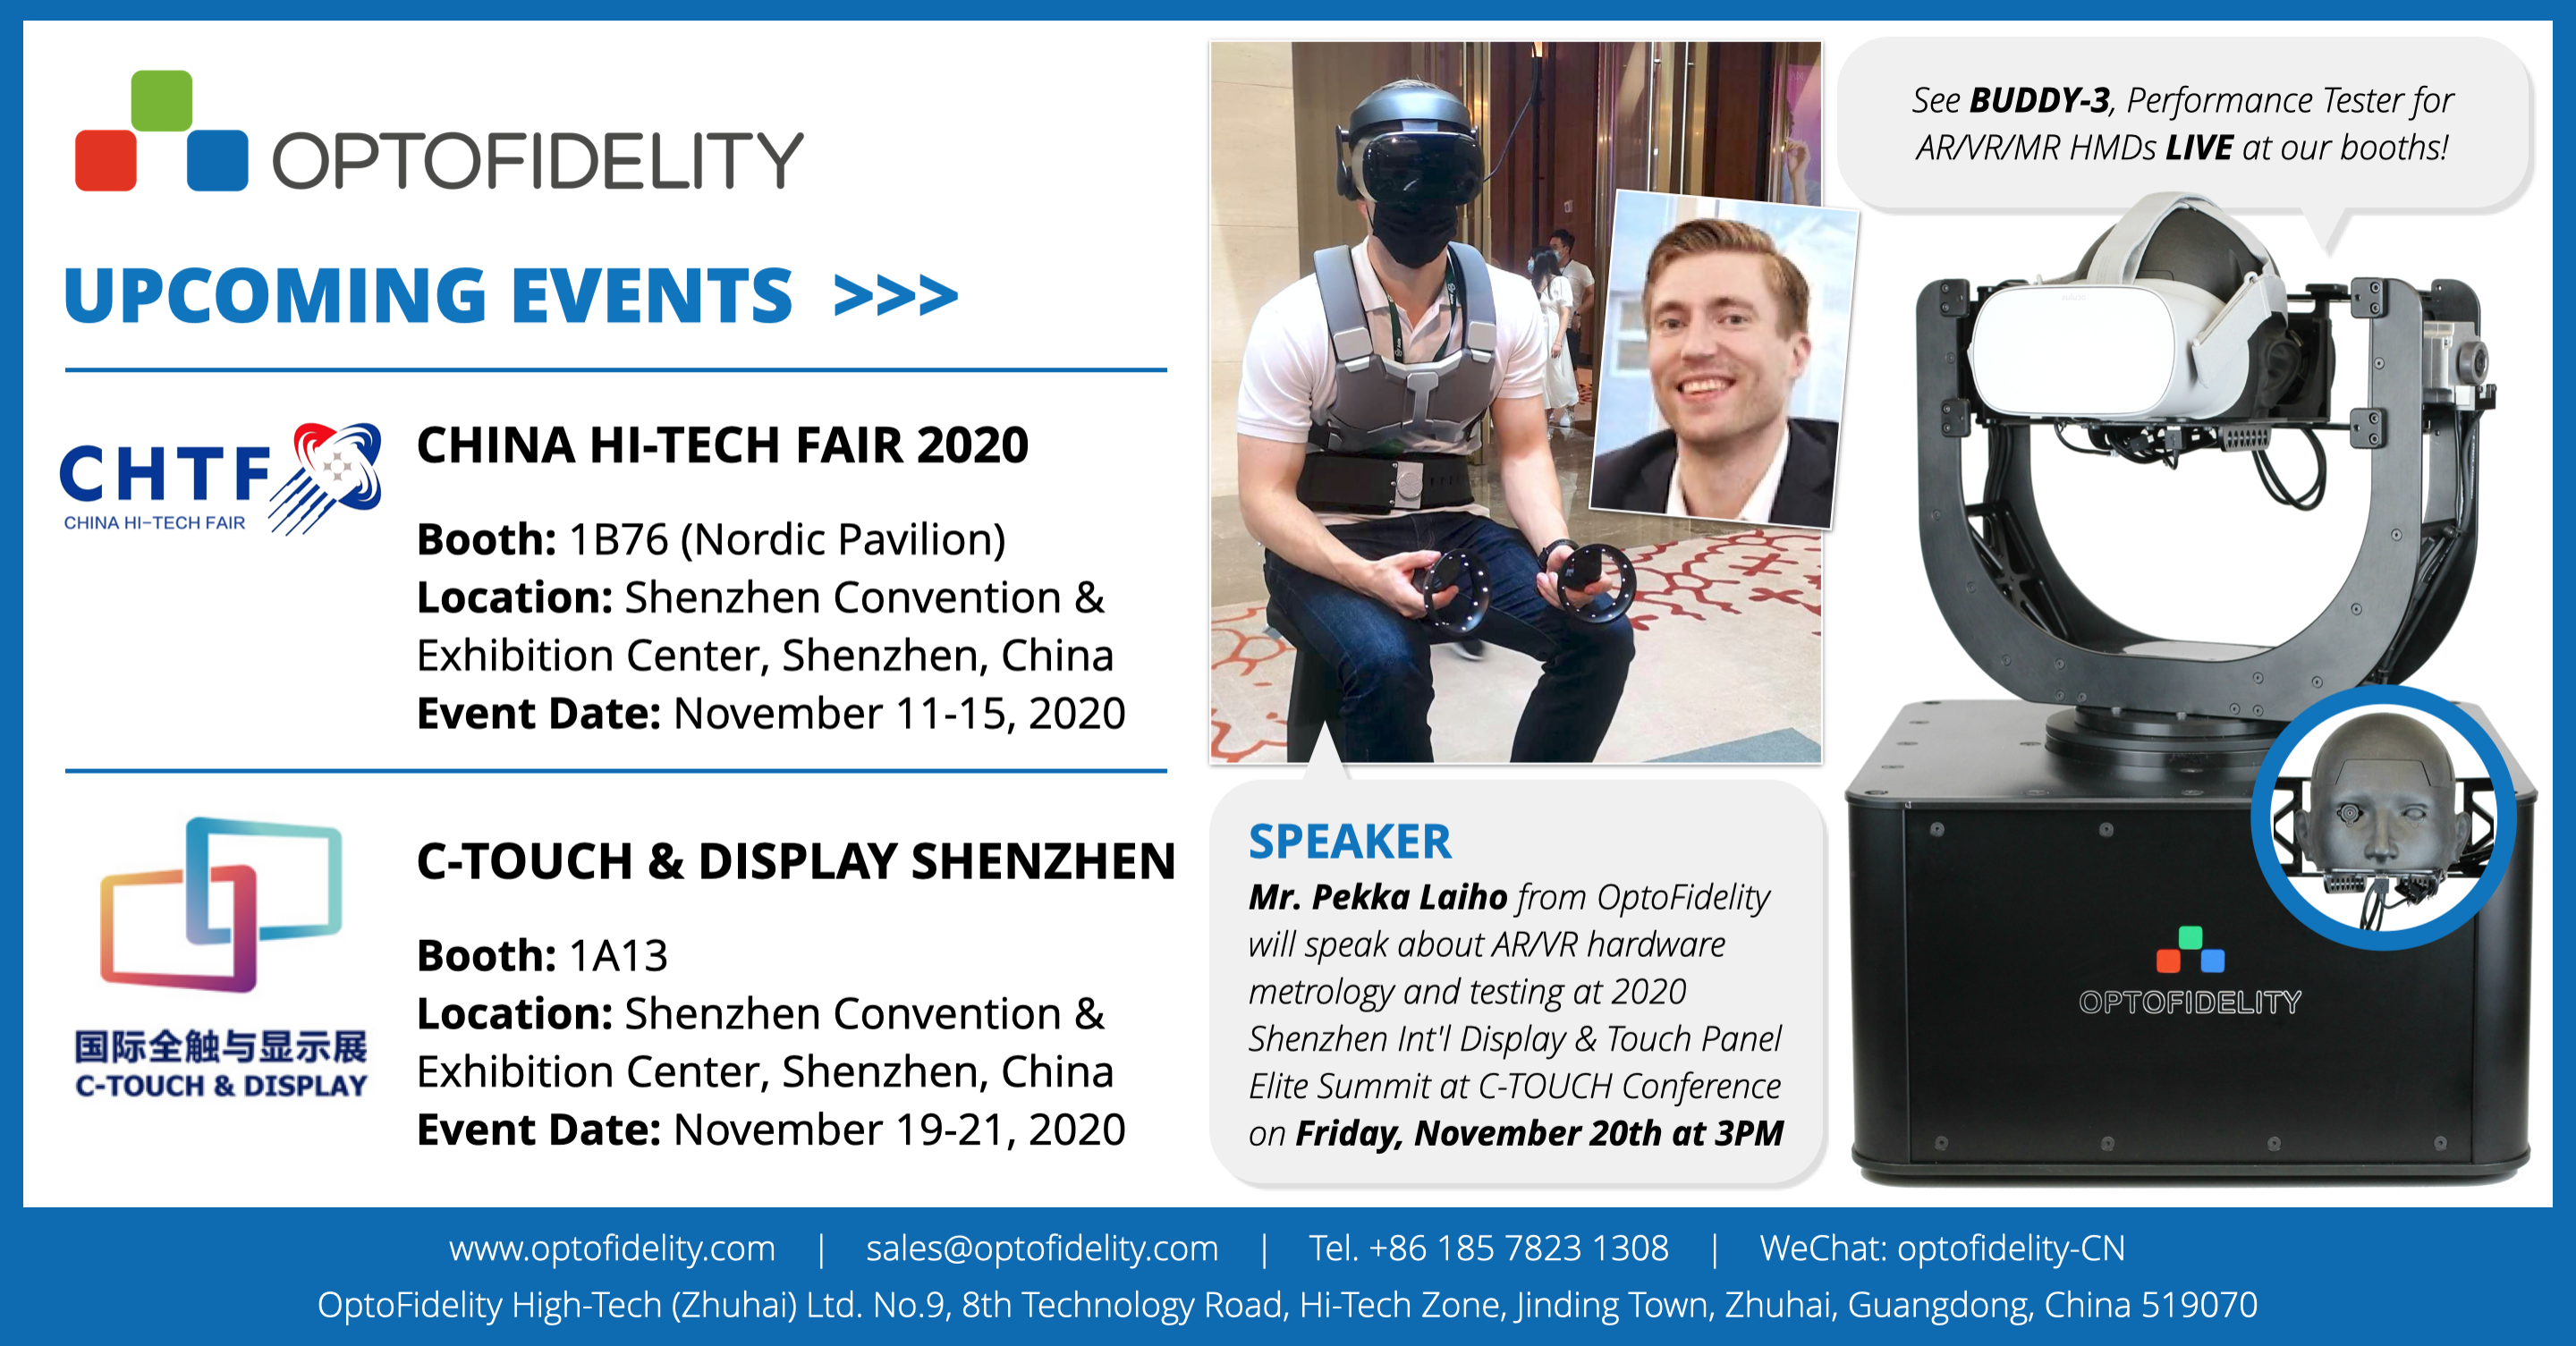 OptoFidelity at CHTF and C-TOUCH & DISPLAY in Shenzhen, China in 2020